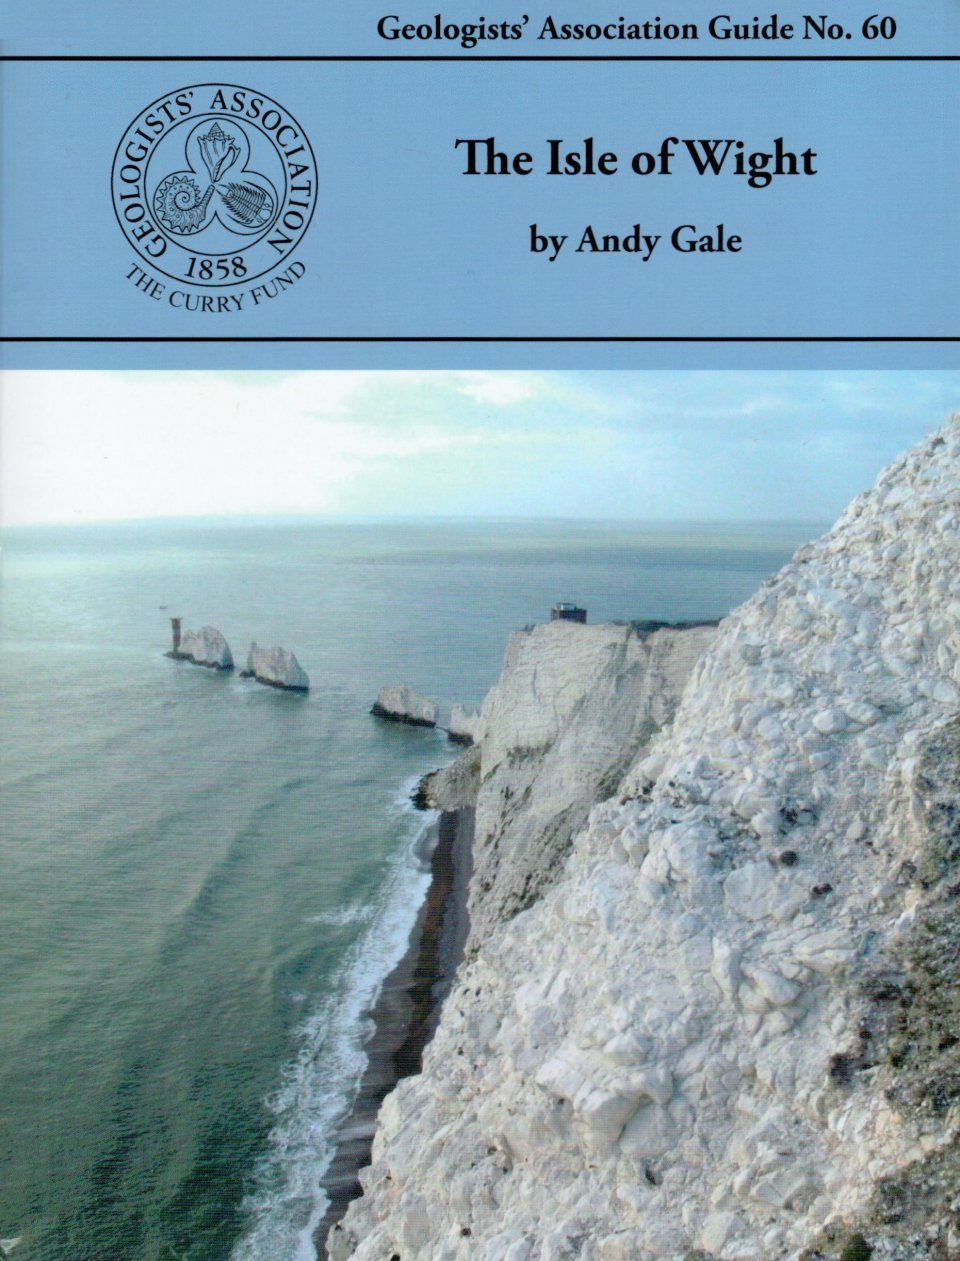 Geology of the Isle of Wight